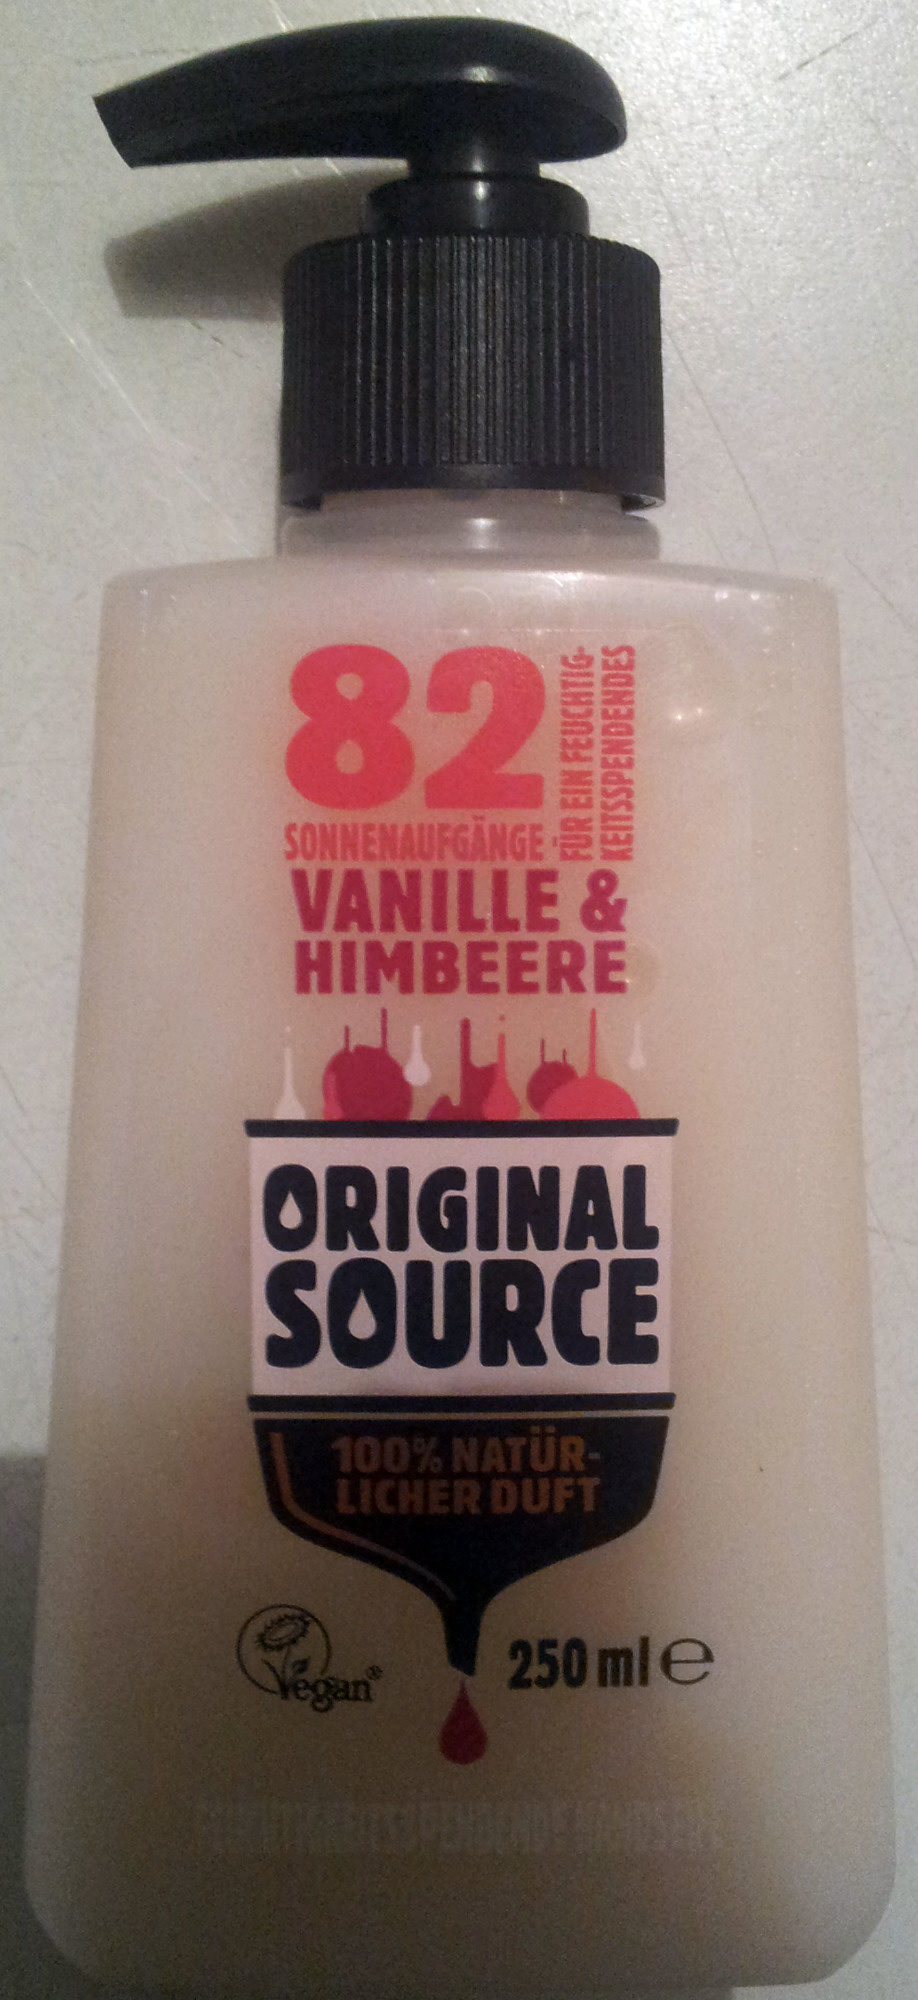 Original Source Vanille & Himbeere - Product